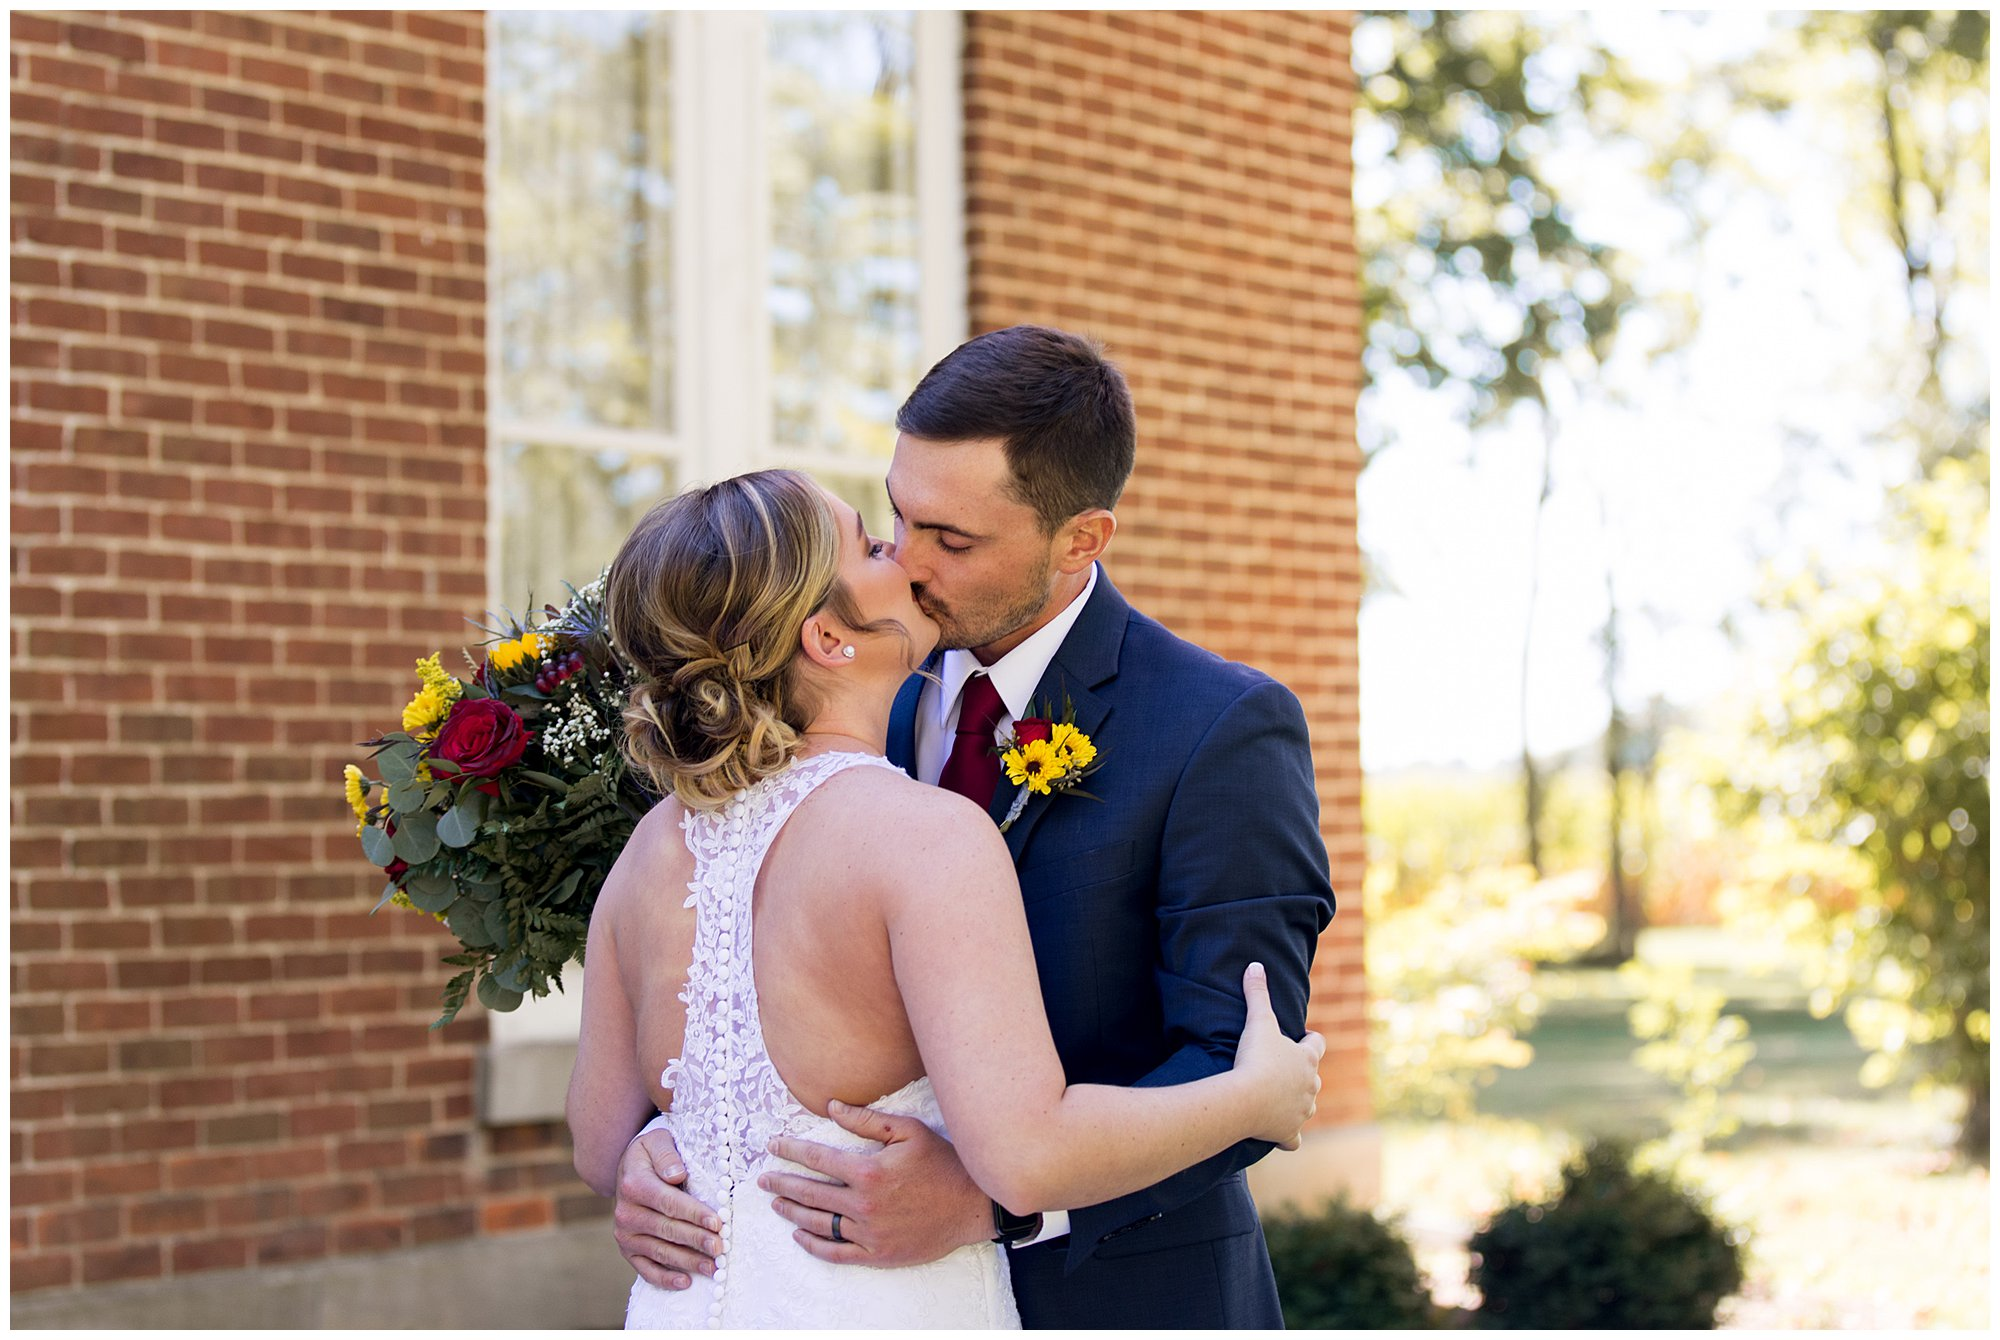 bride and groom kiss after first look at Legacy Barn wedding venue in Kokomo Indiana